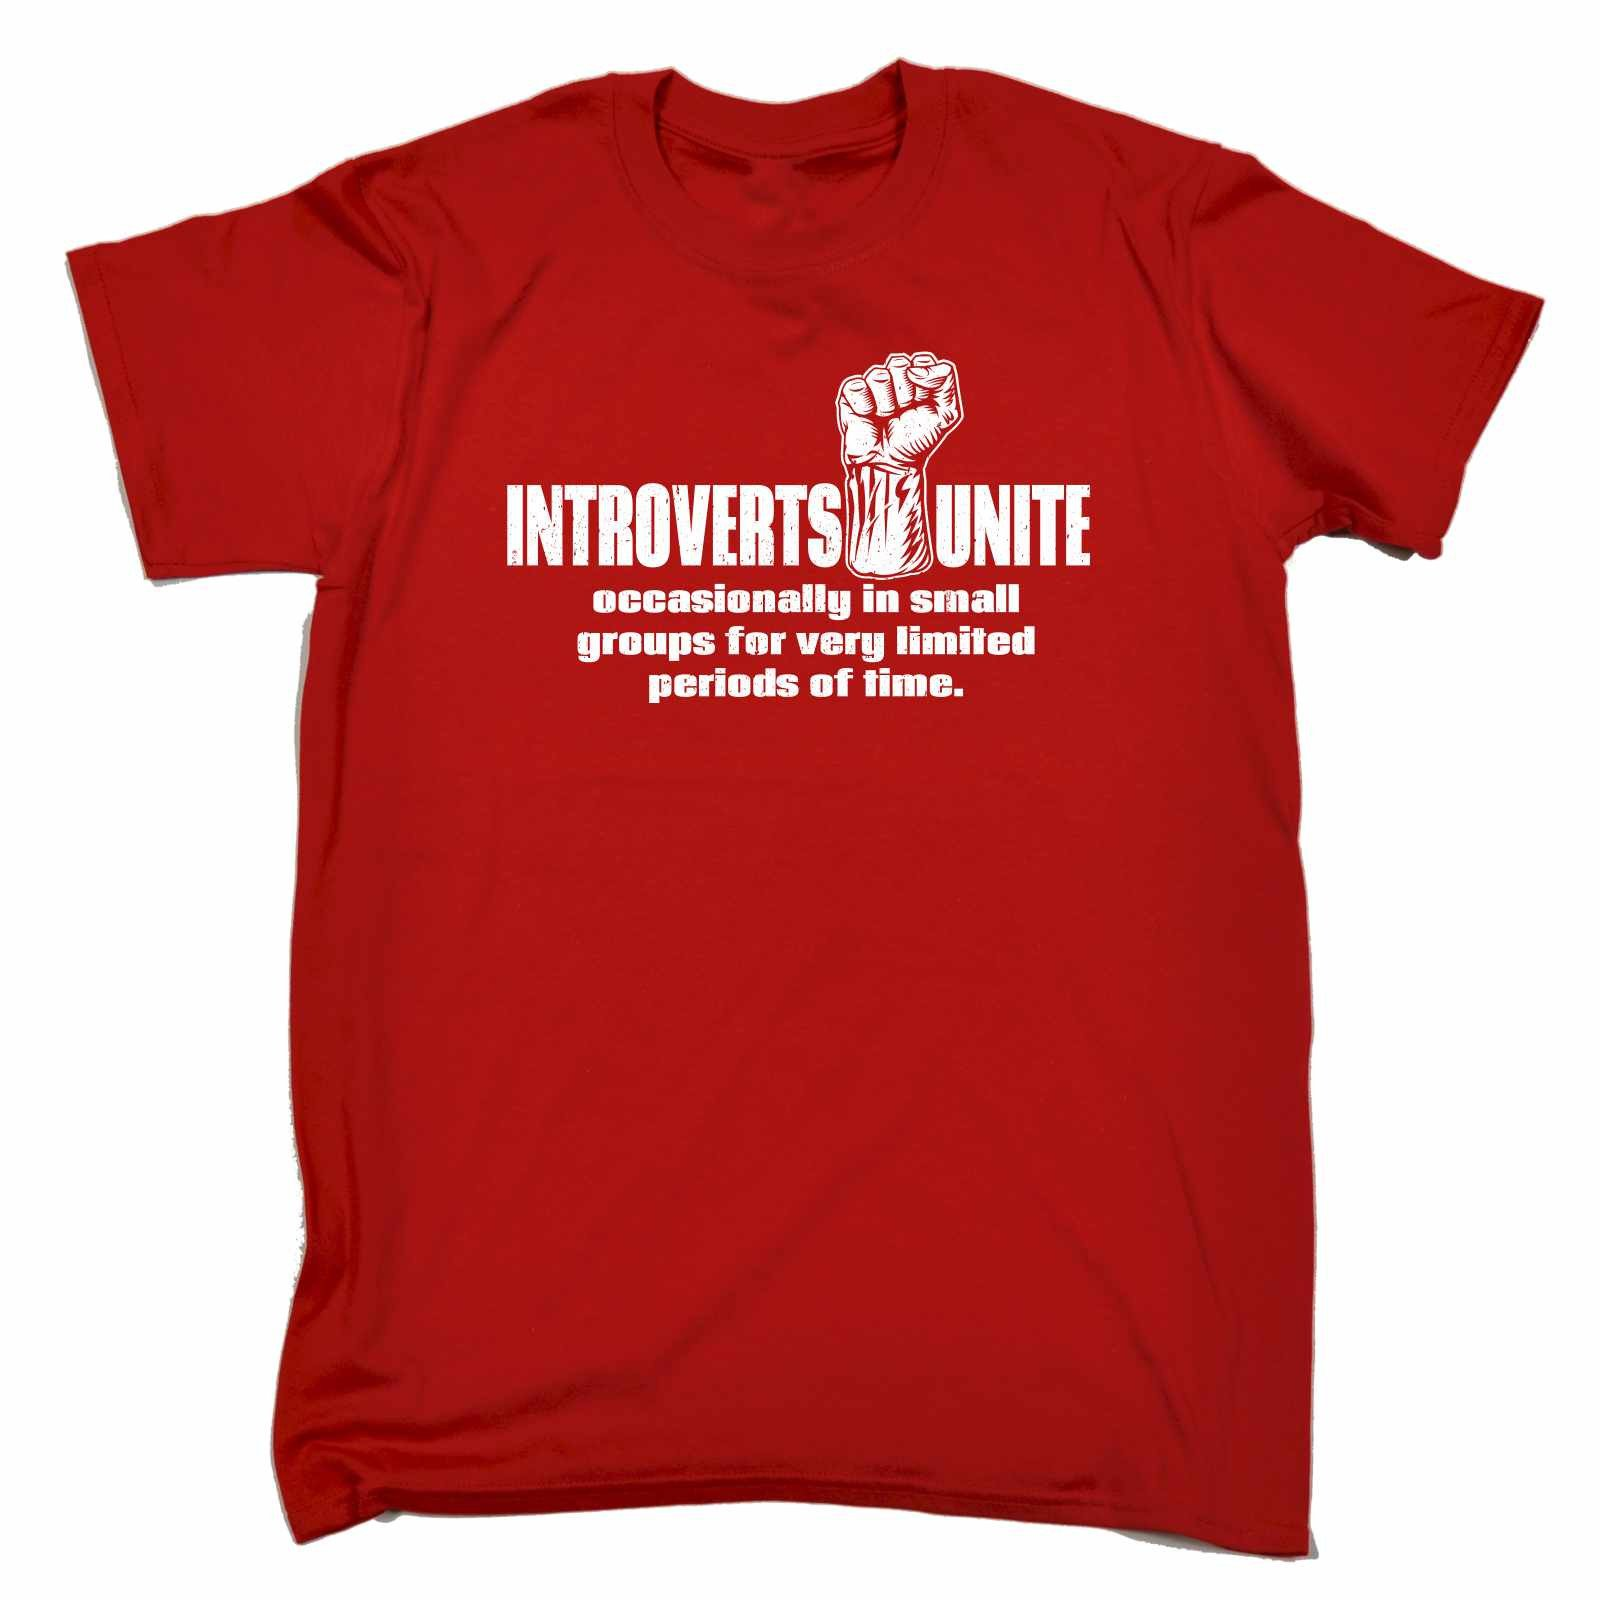 2018 Hot Sale INTROVERTS UNITE OCCASIONALLY IN SMALL GROUPS T SHIRT Joke Funny Birthday Gift Tee Shirt In Shirts From Mens Clothing On Aliexpress